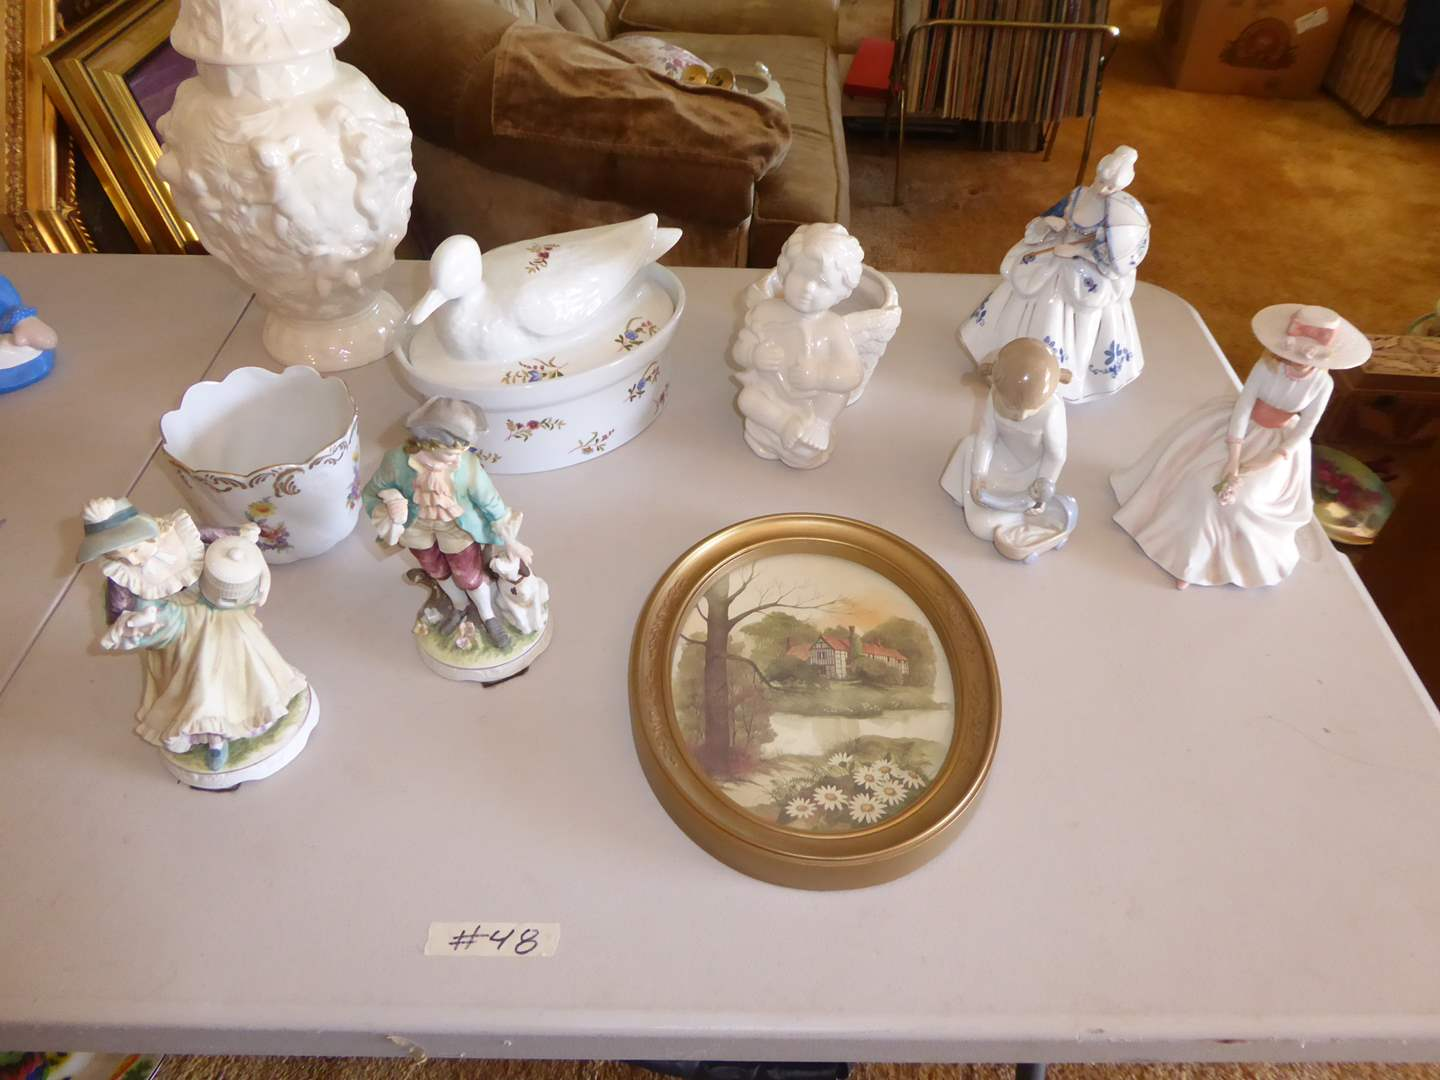 Lot # 48 - Cordon Bleu Serving Dish, Figurines & More  (main image)